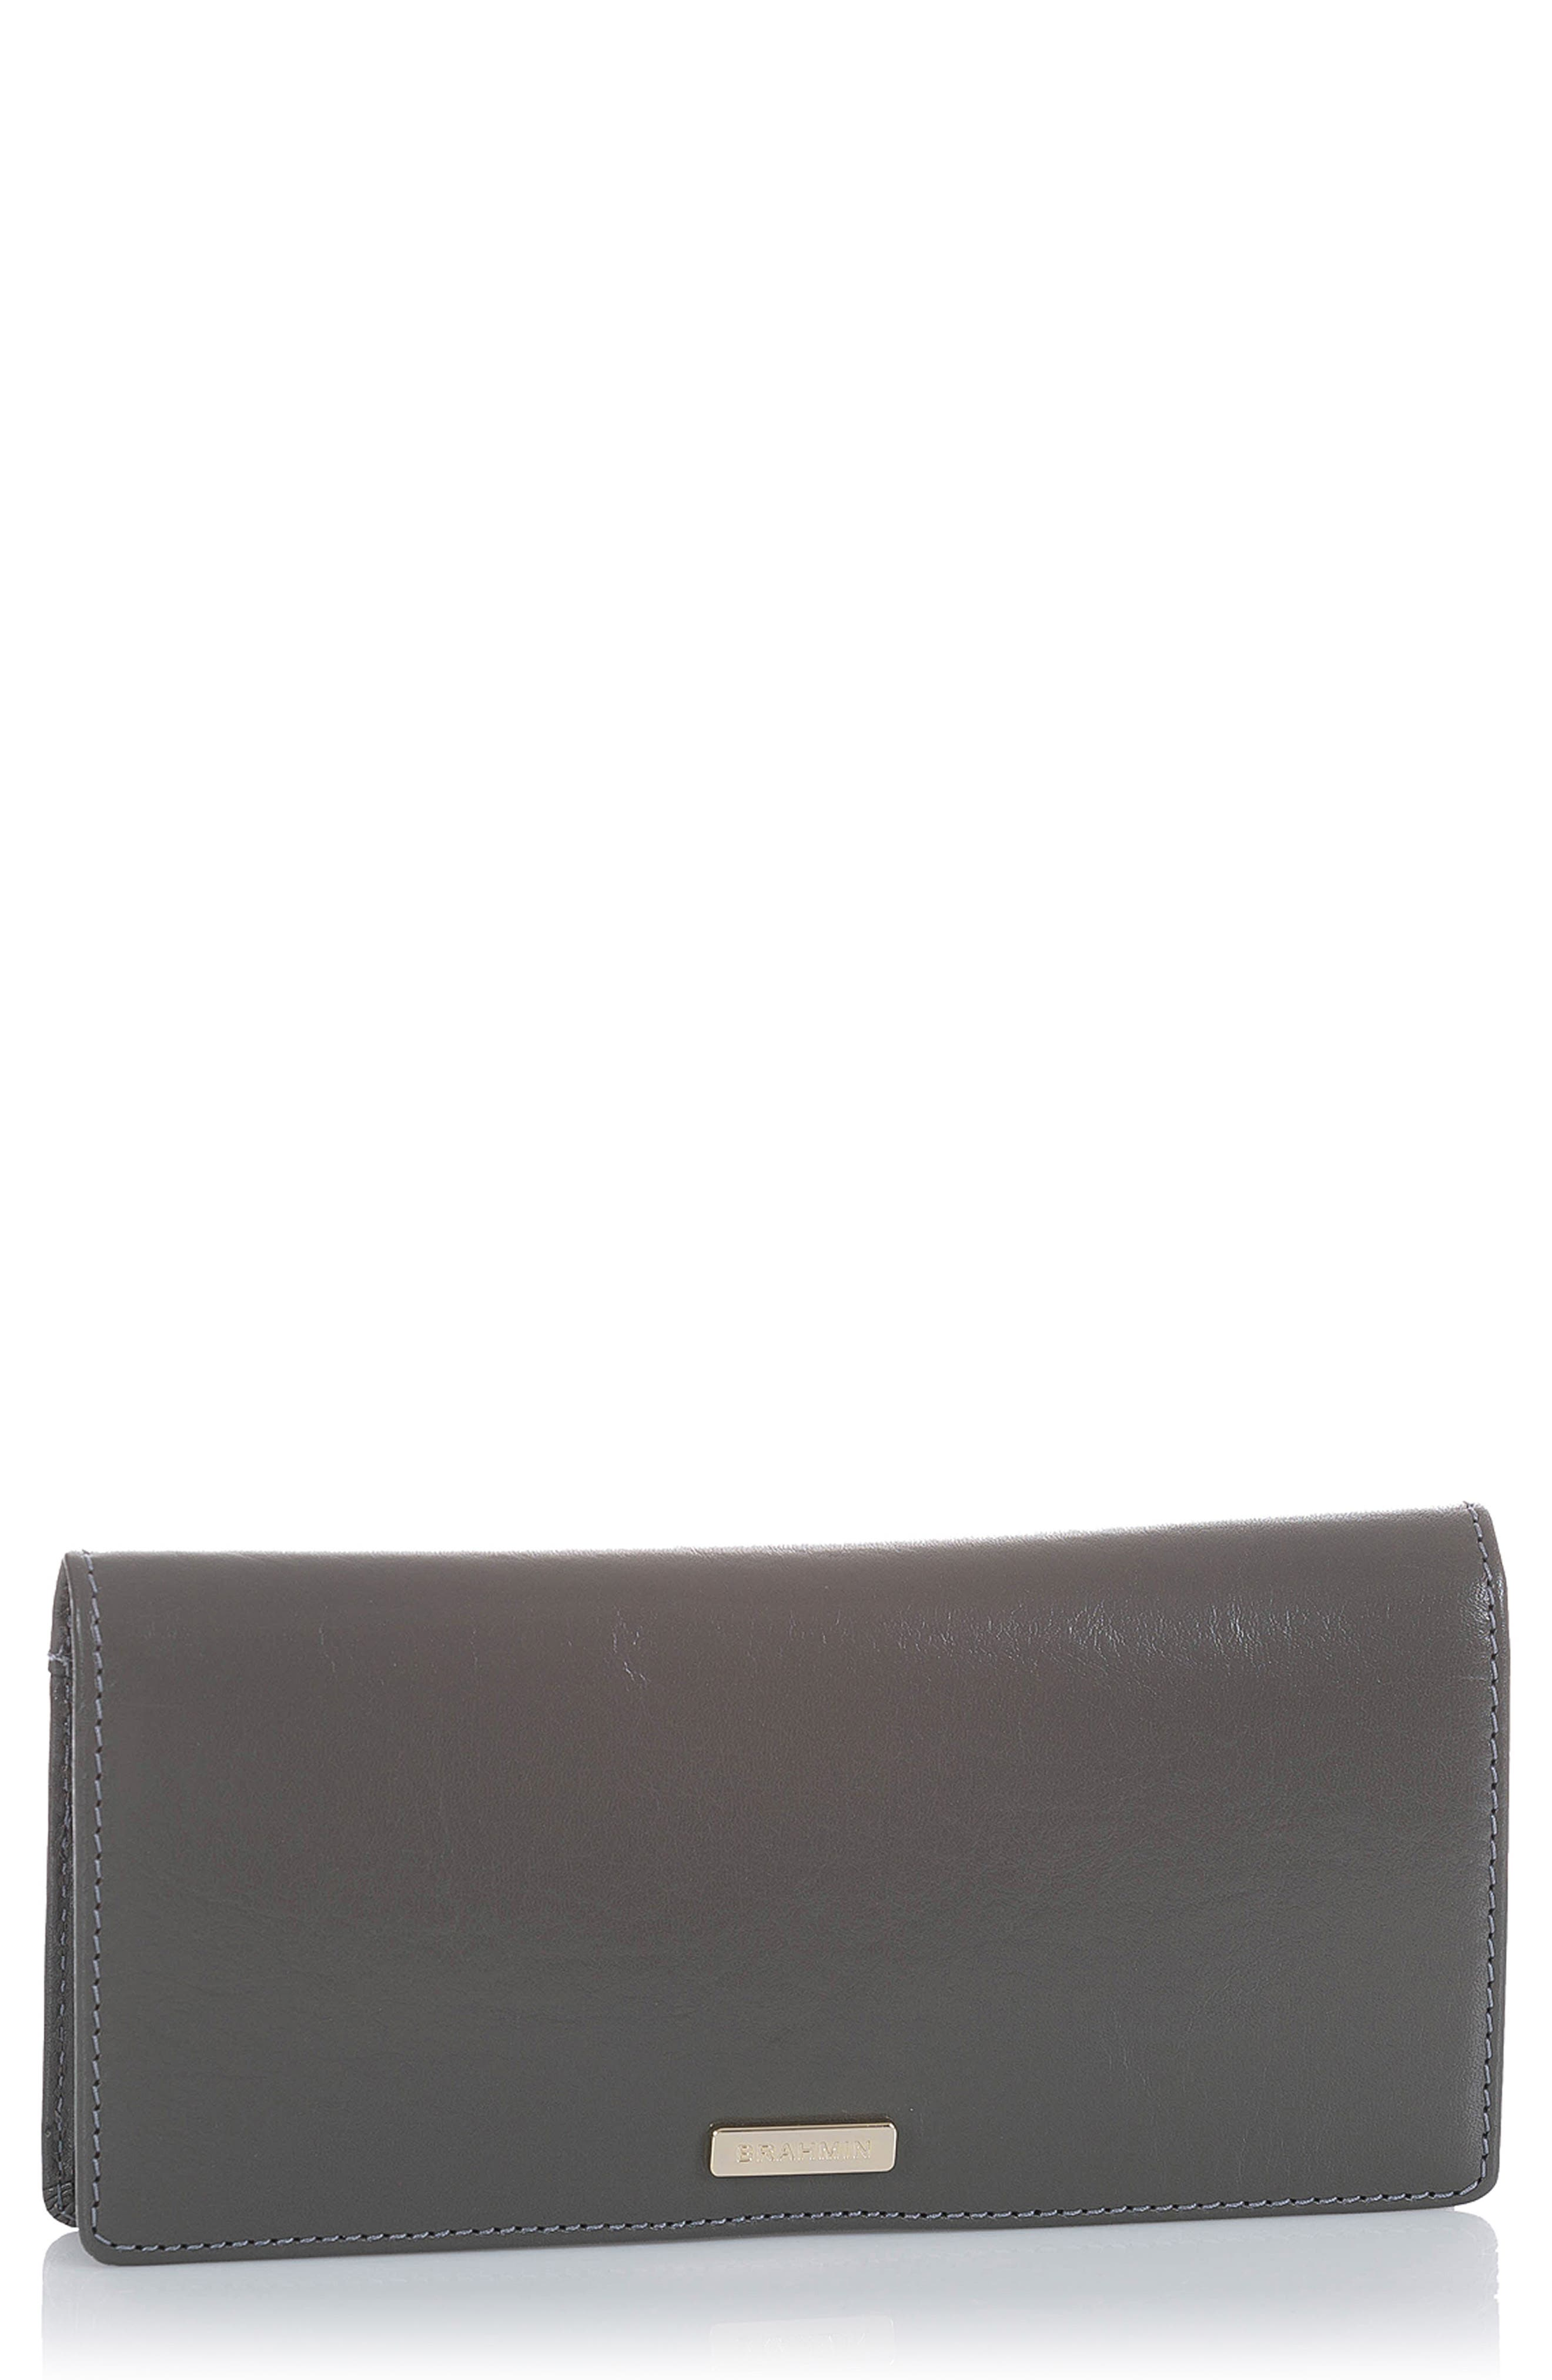 Ady Leather Wallet,                             Alternate thumbnail 4, color,                             CHARCOAL